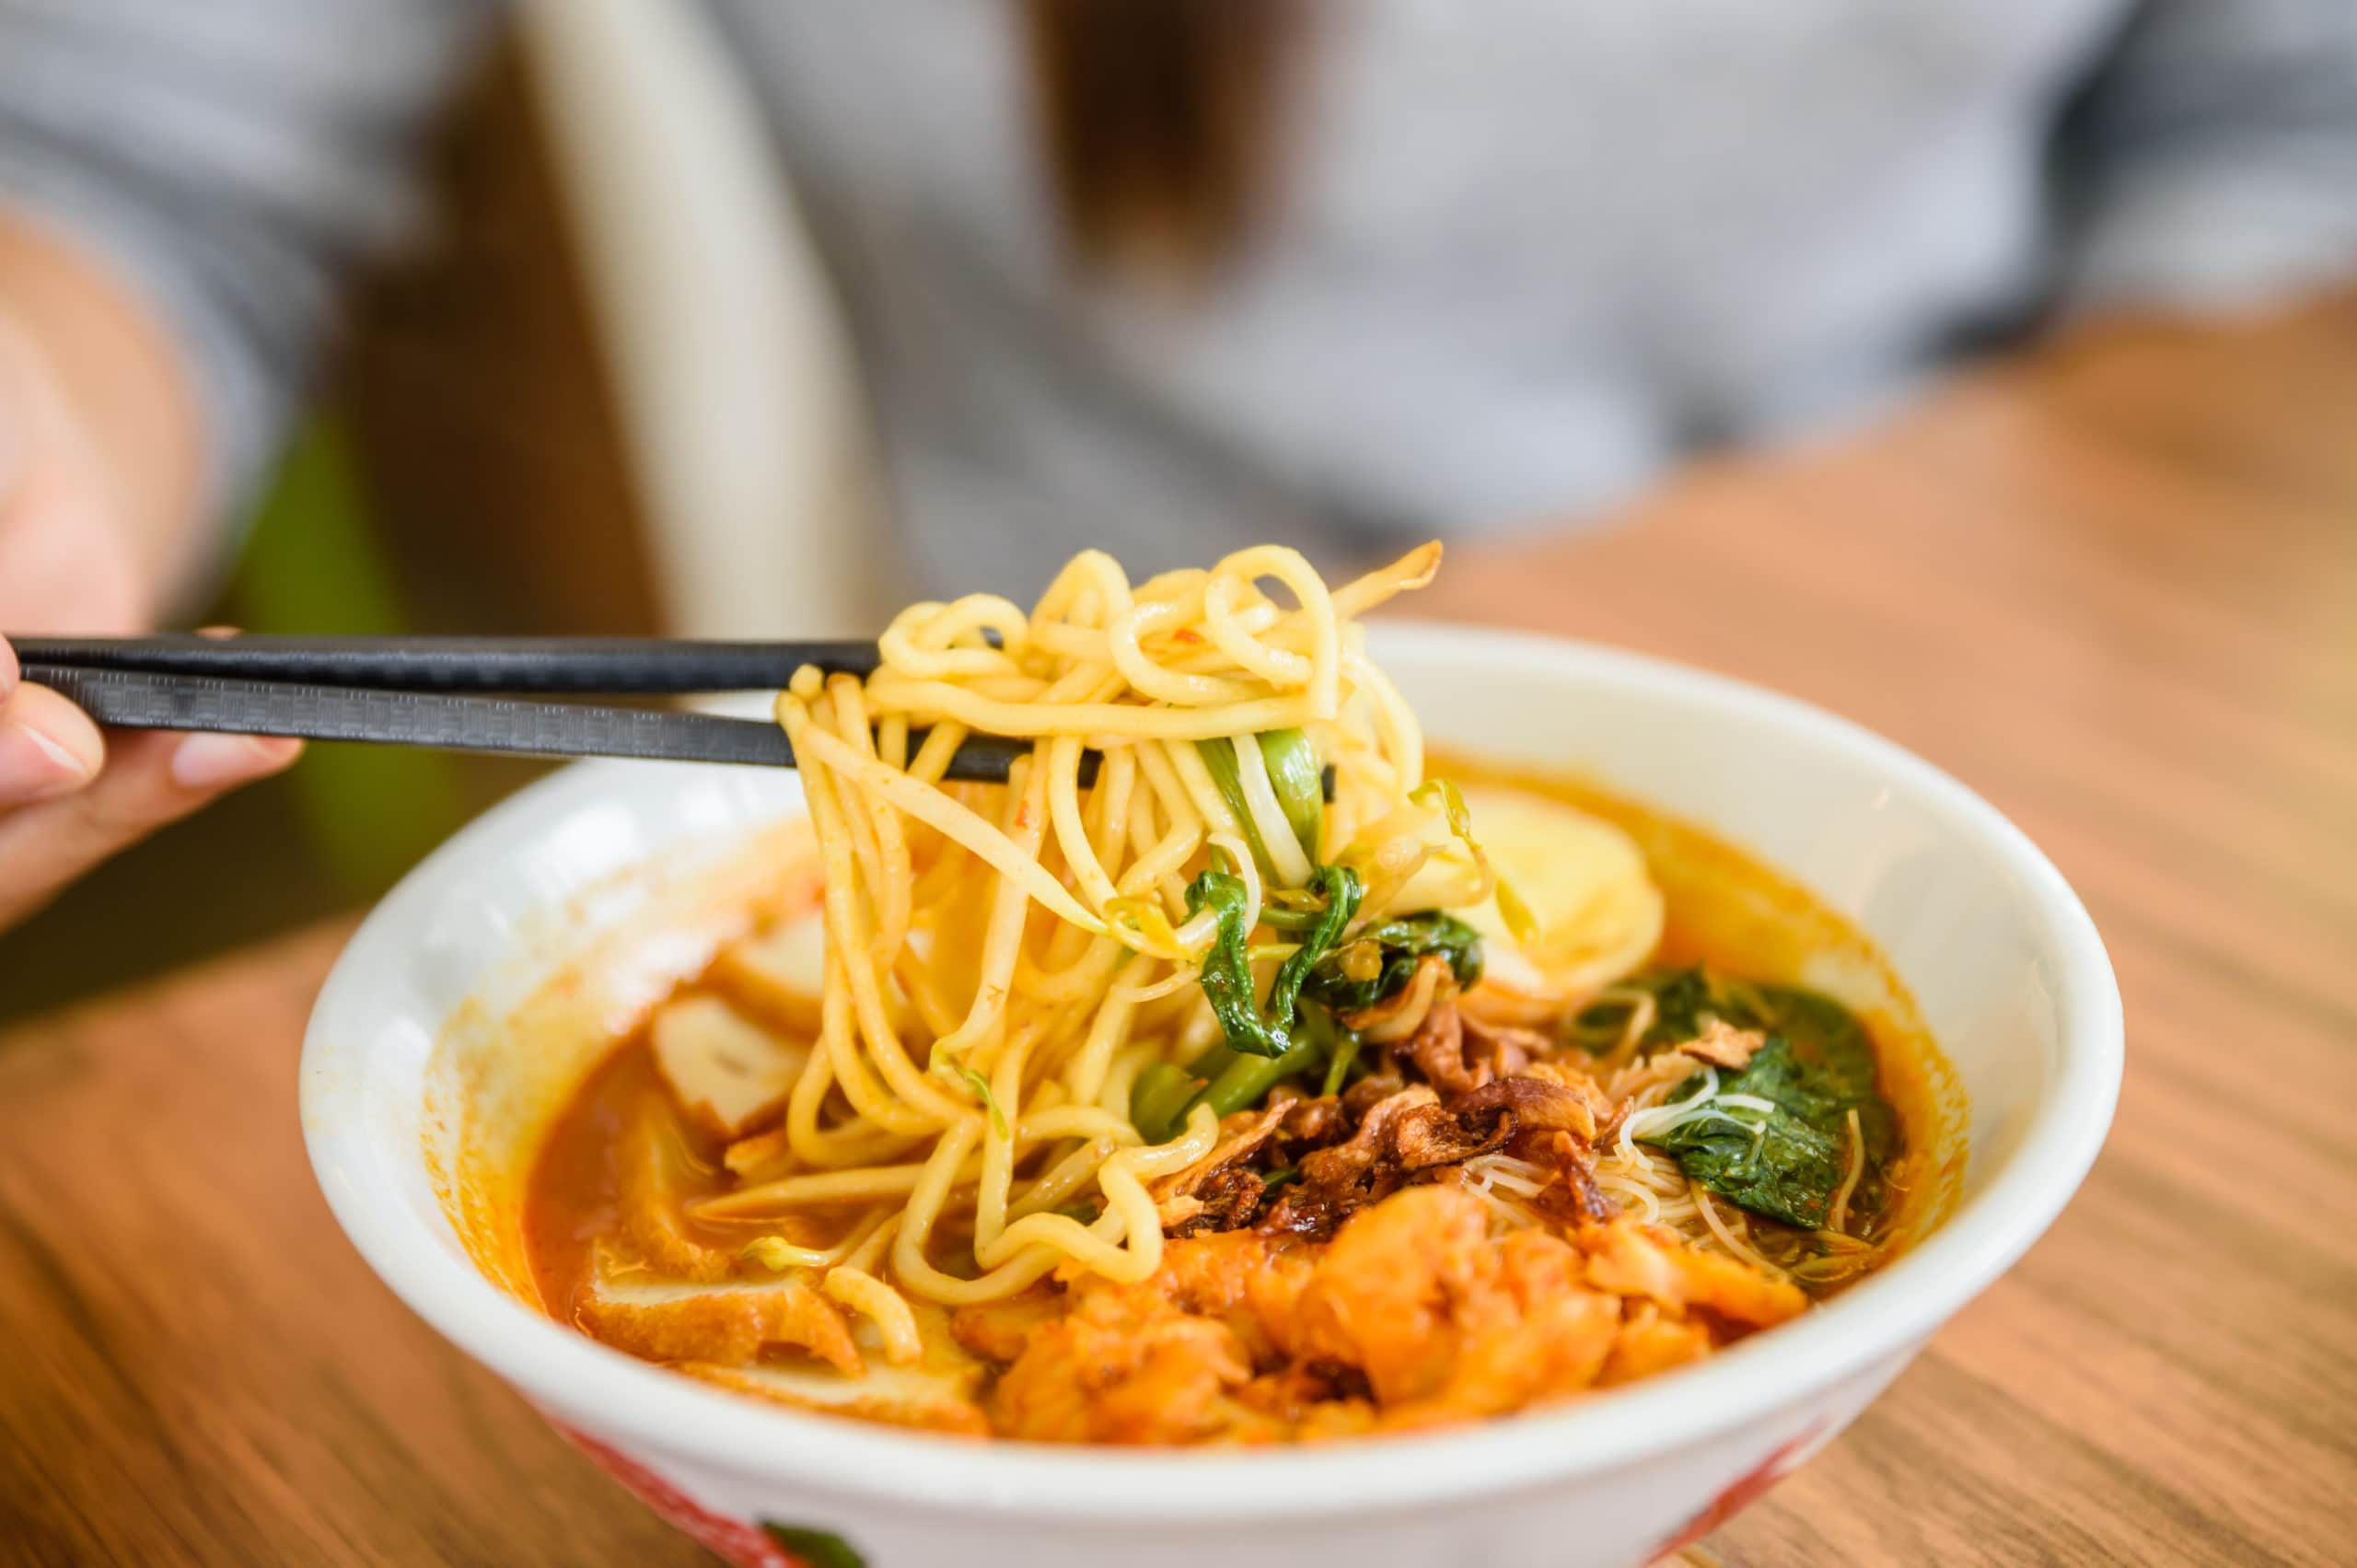 Hand with Chinese chopsticks eating noodle, a famous Malaysia prawn noodle cerry soup.